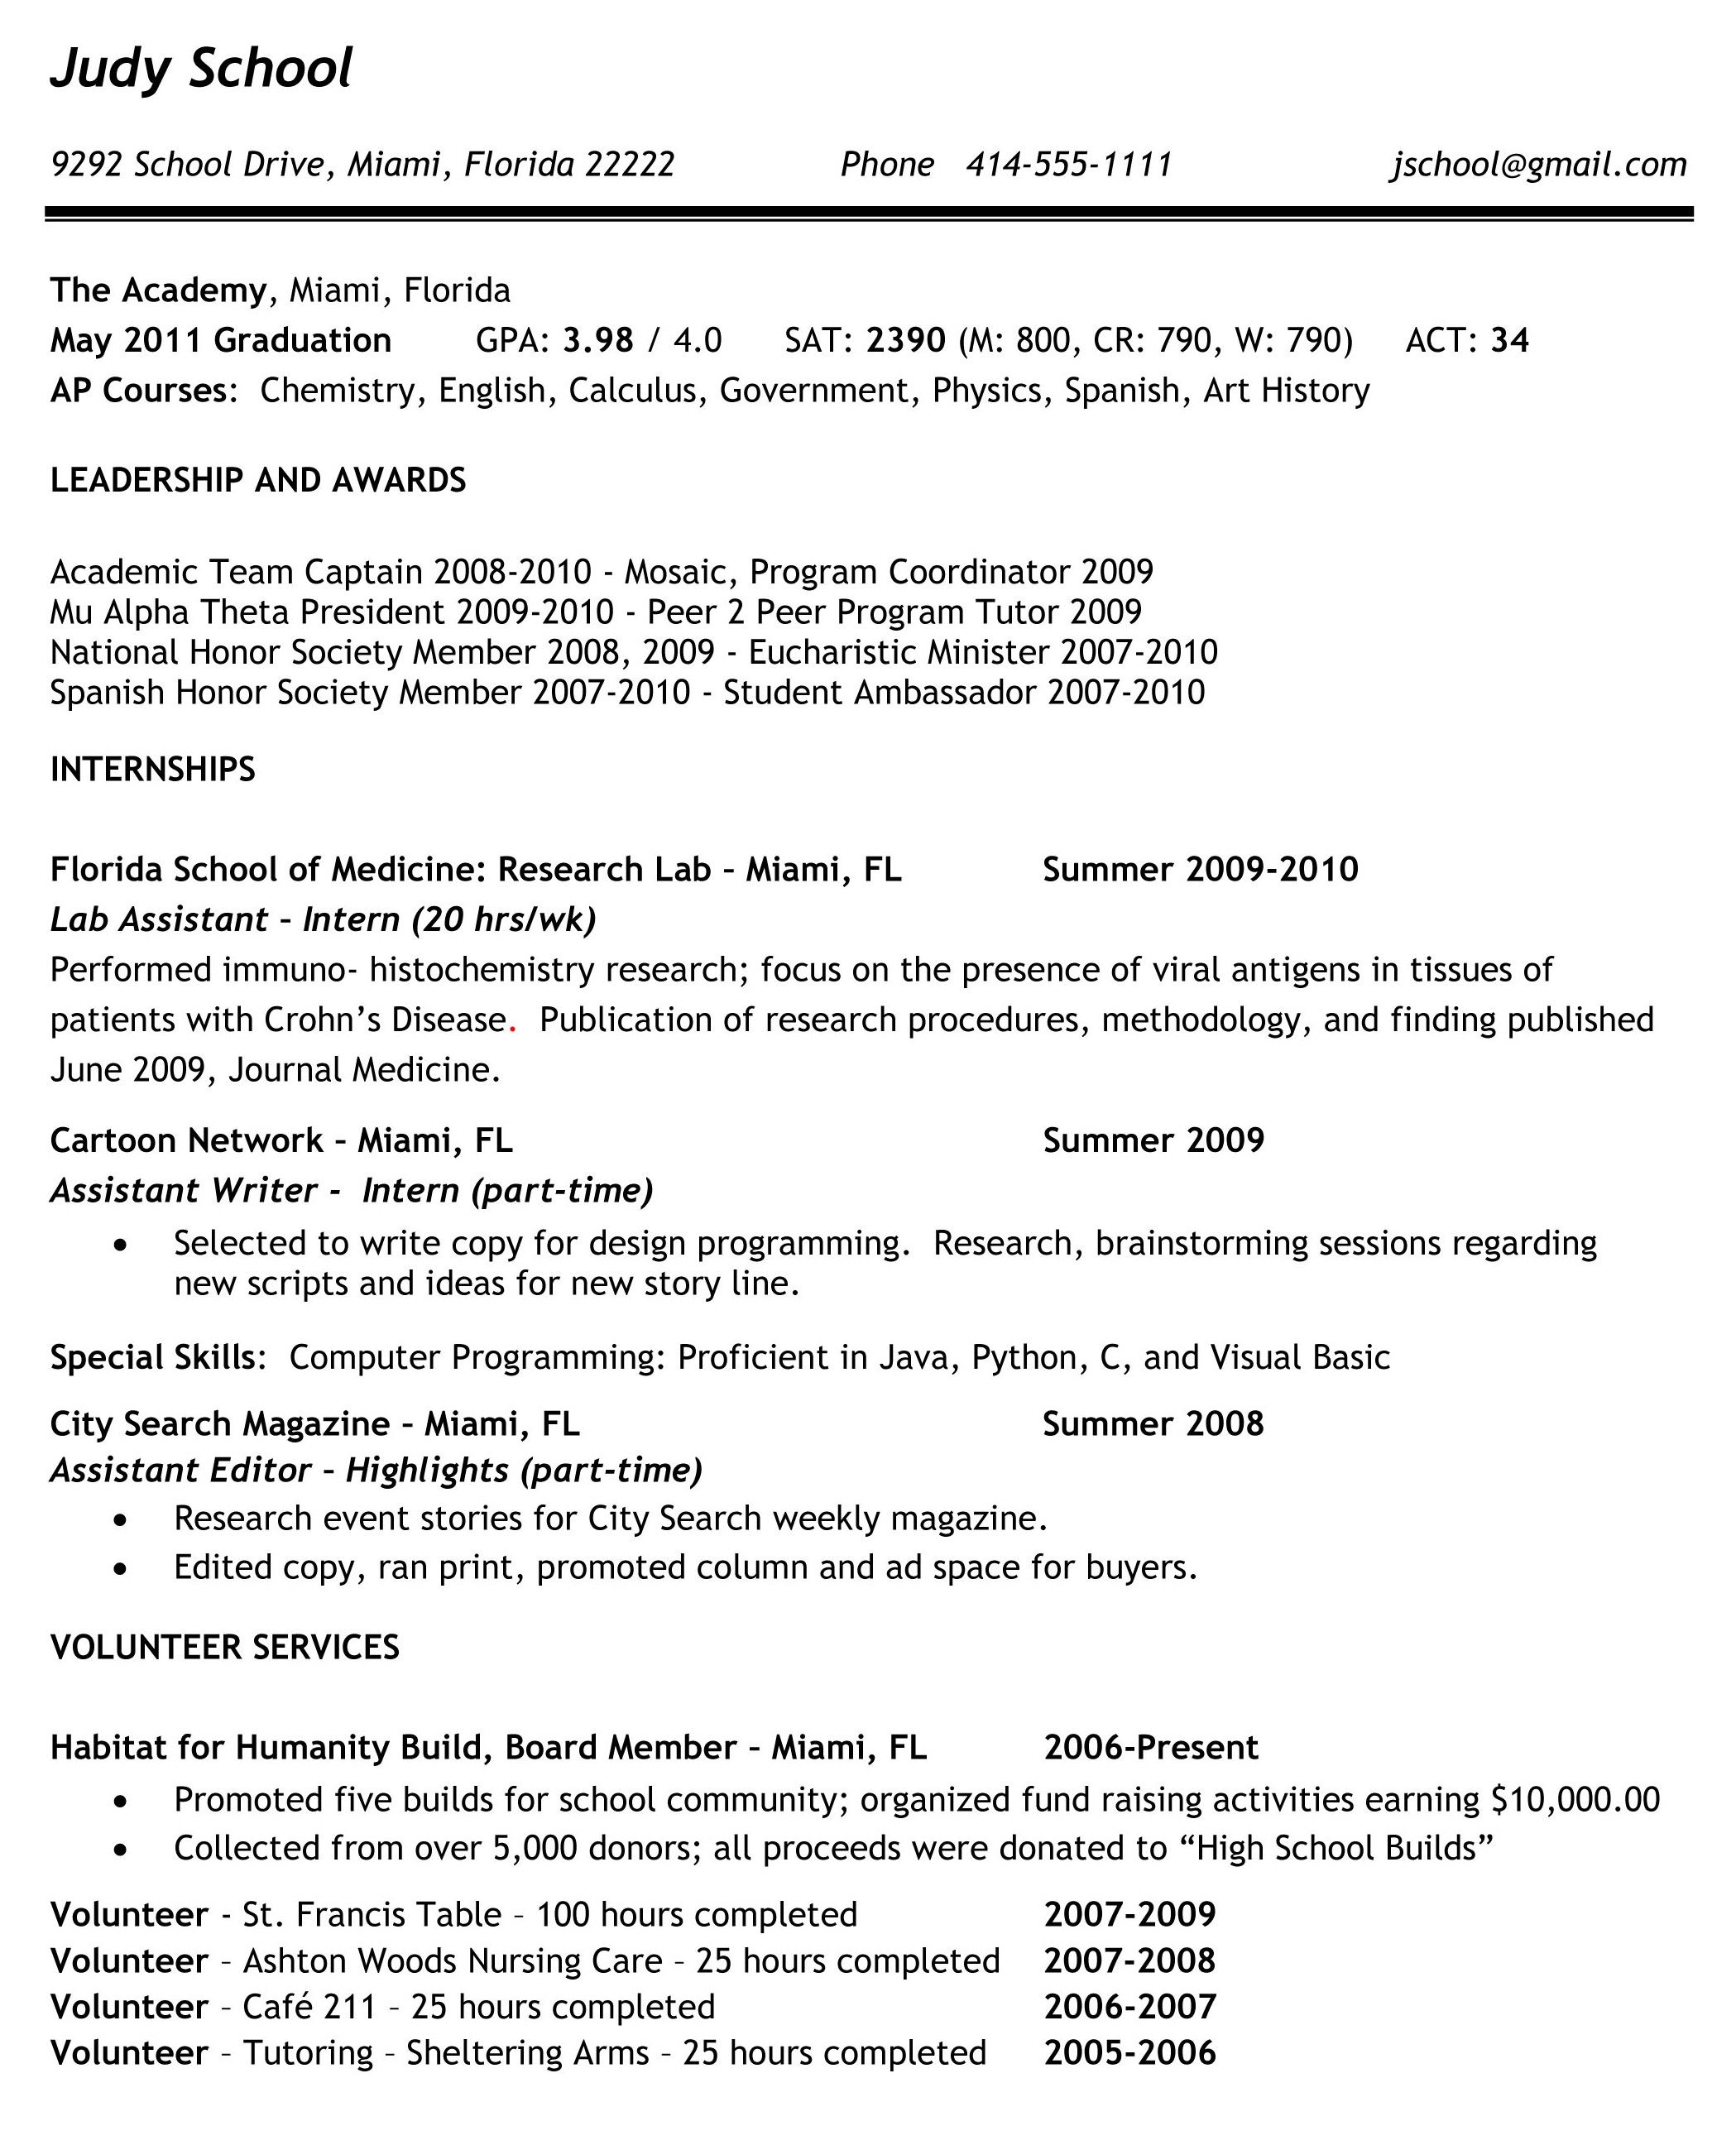 Sample Of Resumes Best High School Resume Examples For College Admission Sample Resumes Inspiration Design